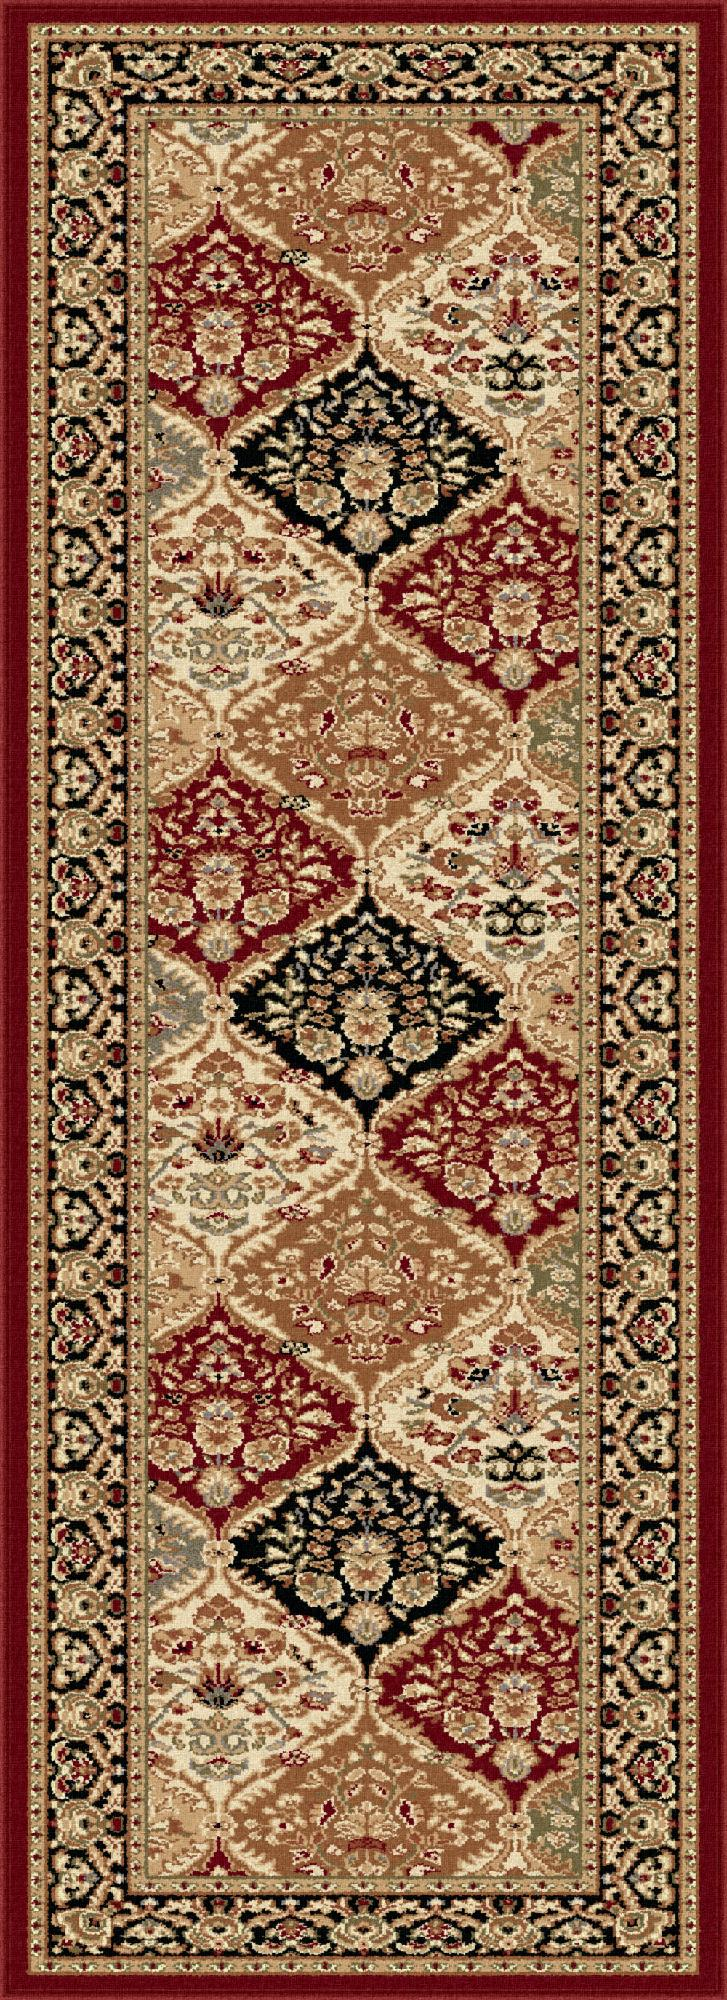 Tayse Rugs Sensation Princeton Red 2 ft. 7 in. x 7 ft. 3 in. Traditional Runner